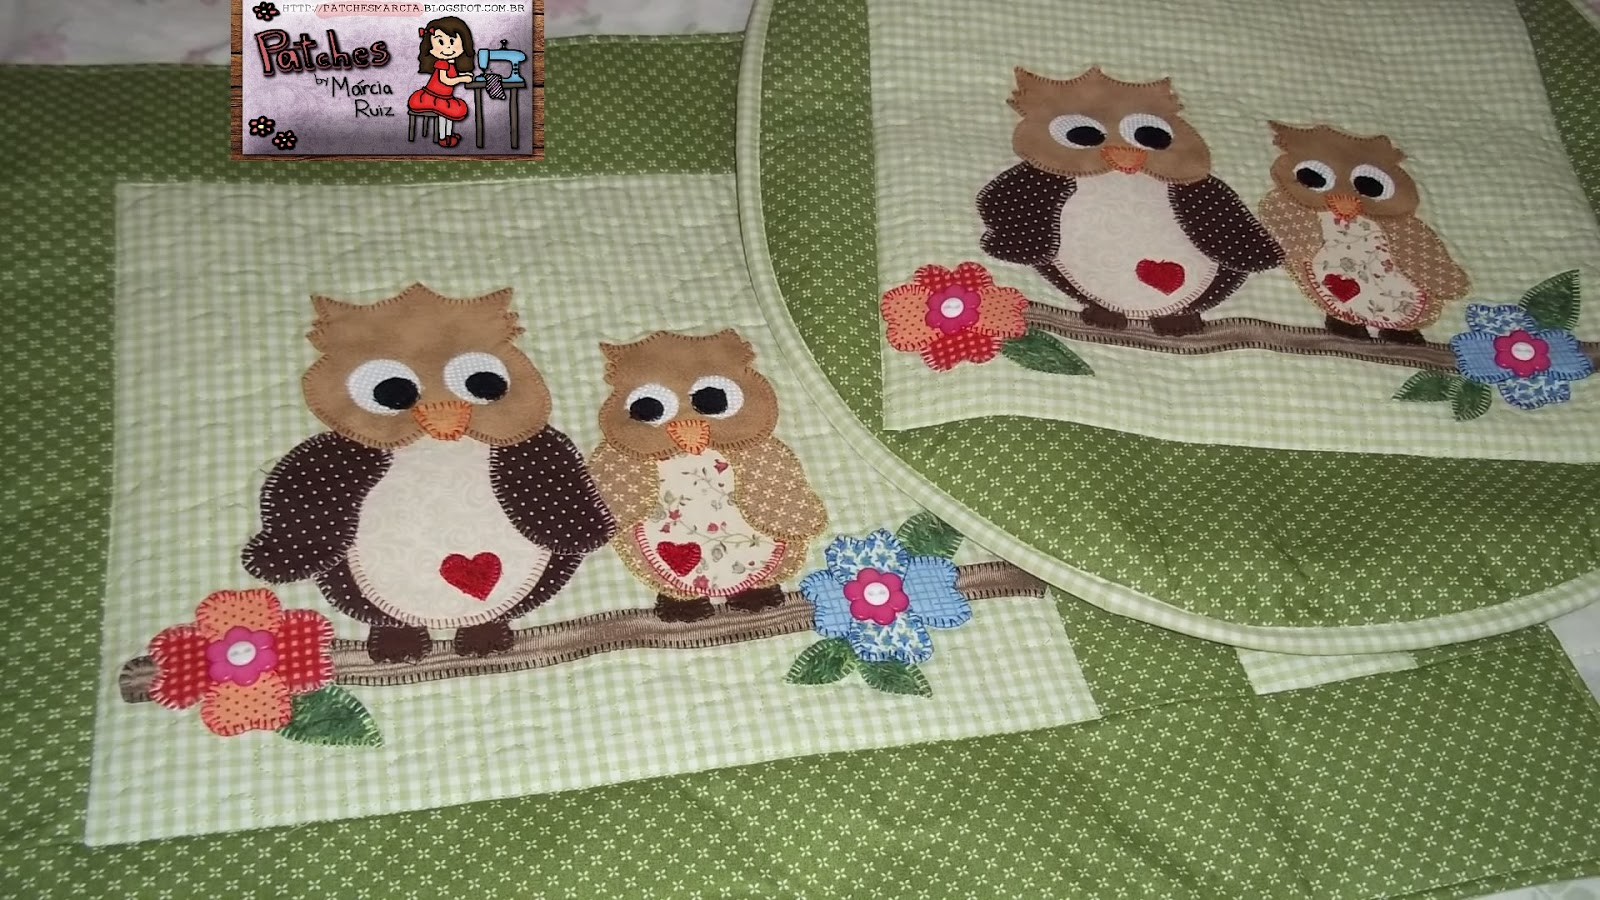 Patchwork Tapete De Banheiro : Patches by M?rcia Ruiz: jogo de banheiro em patchwork e patch